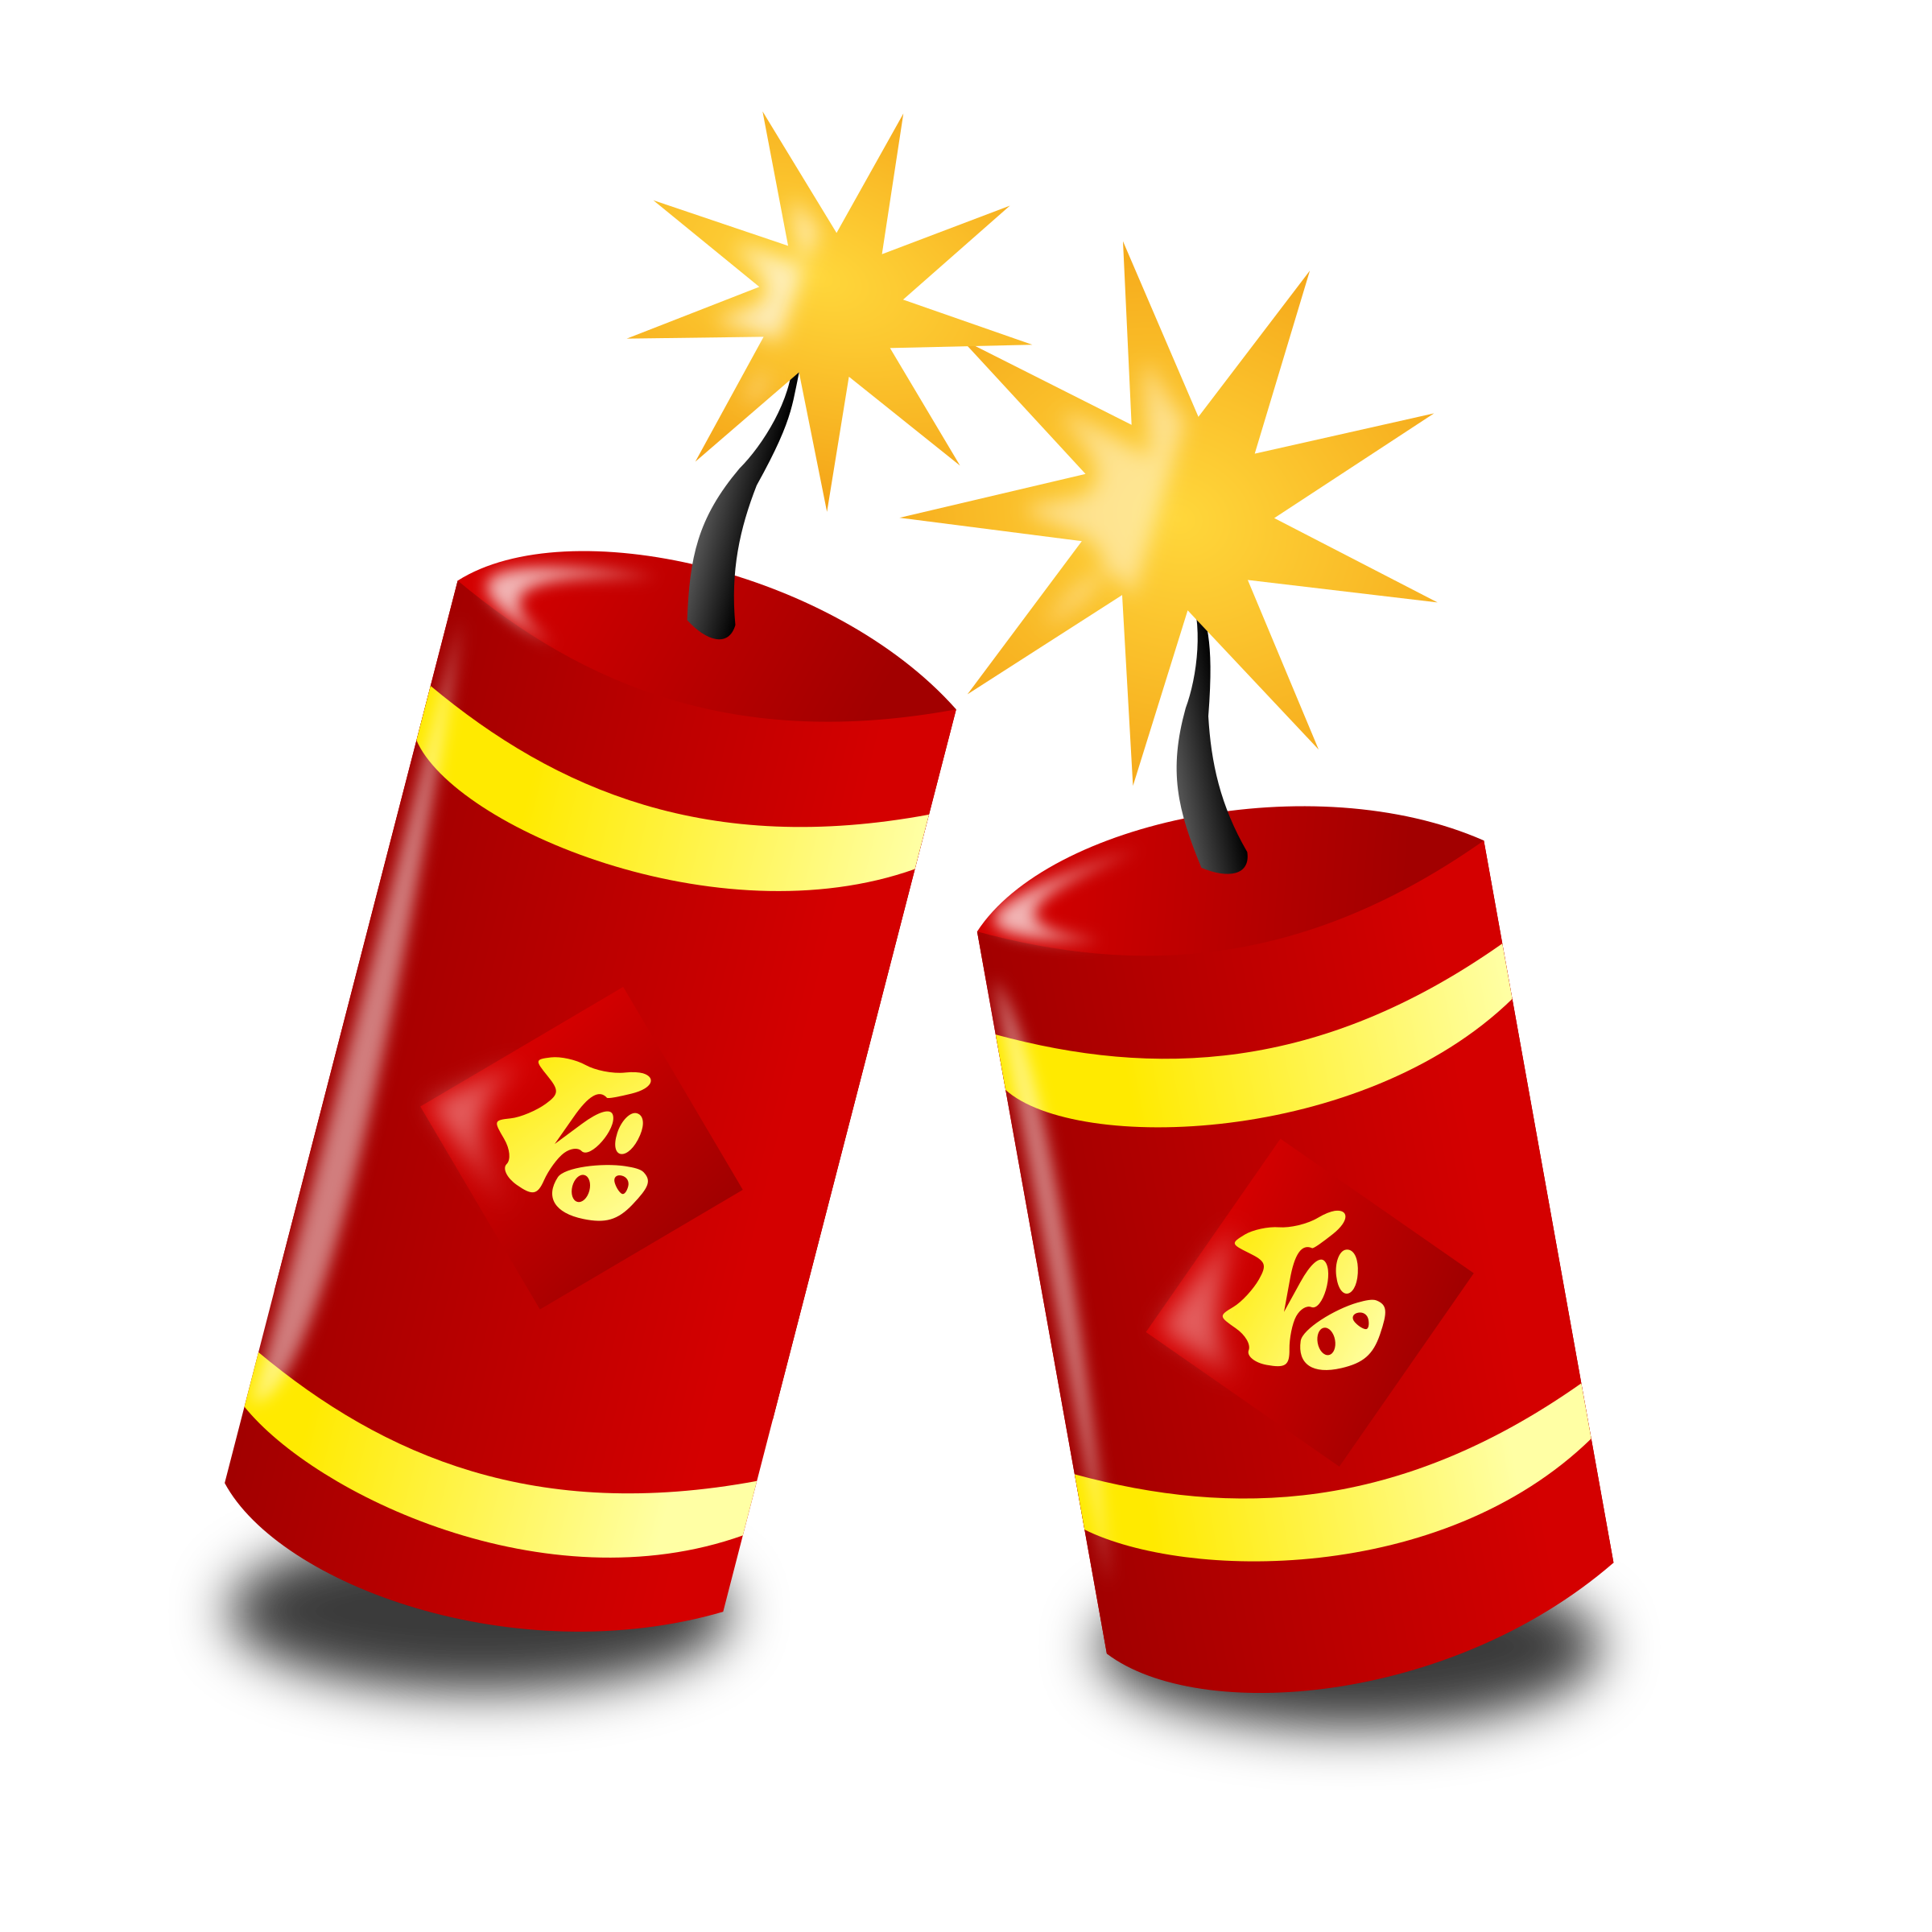 Clipart chinese new year. Firecracker vector bomb picture royalty free stock